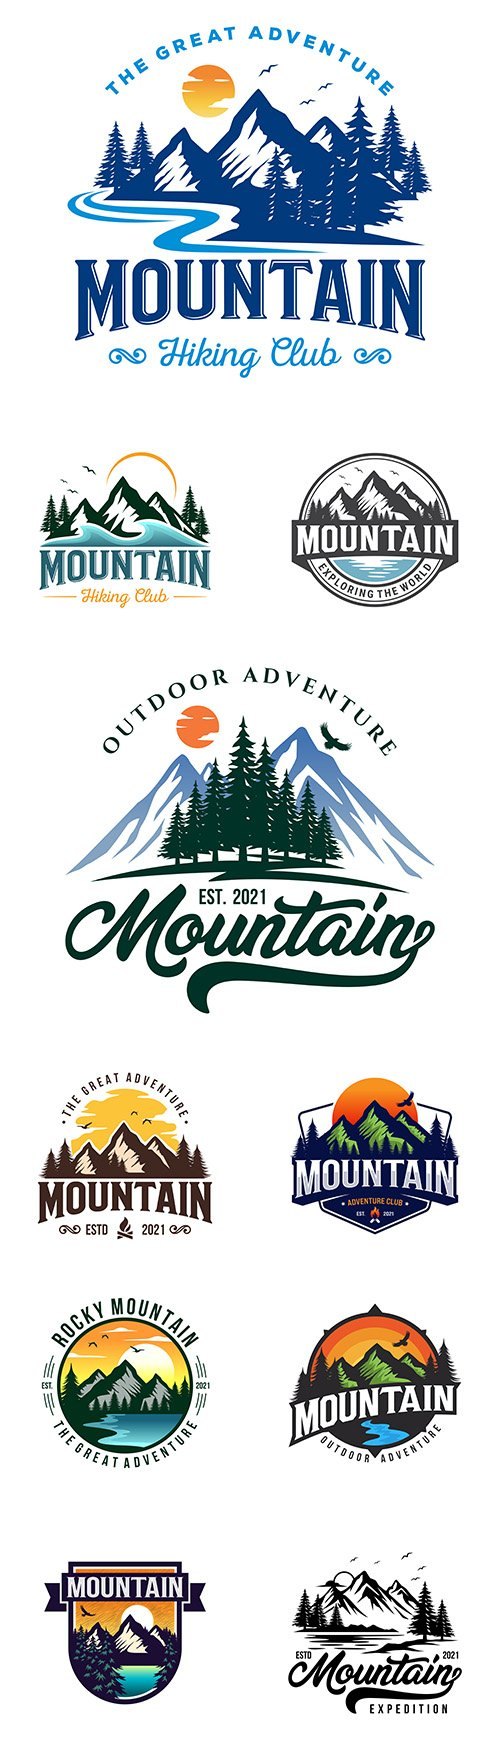 Mountain adventure brand name company logos design